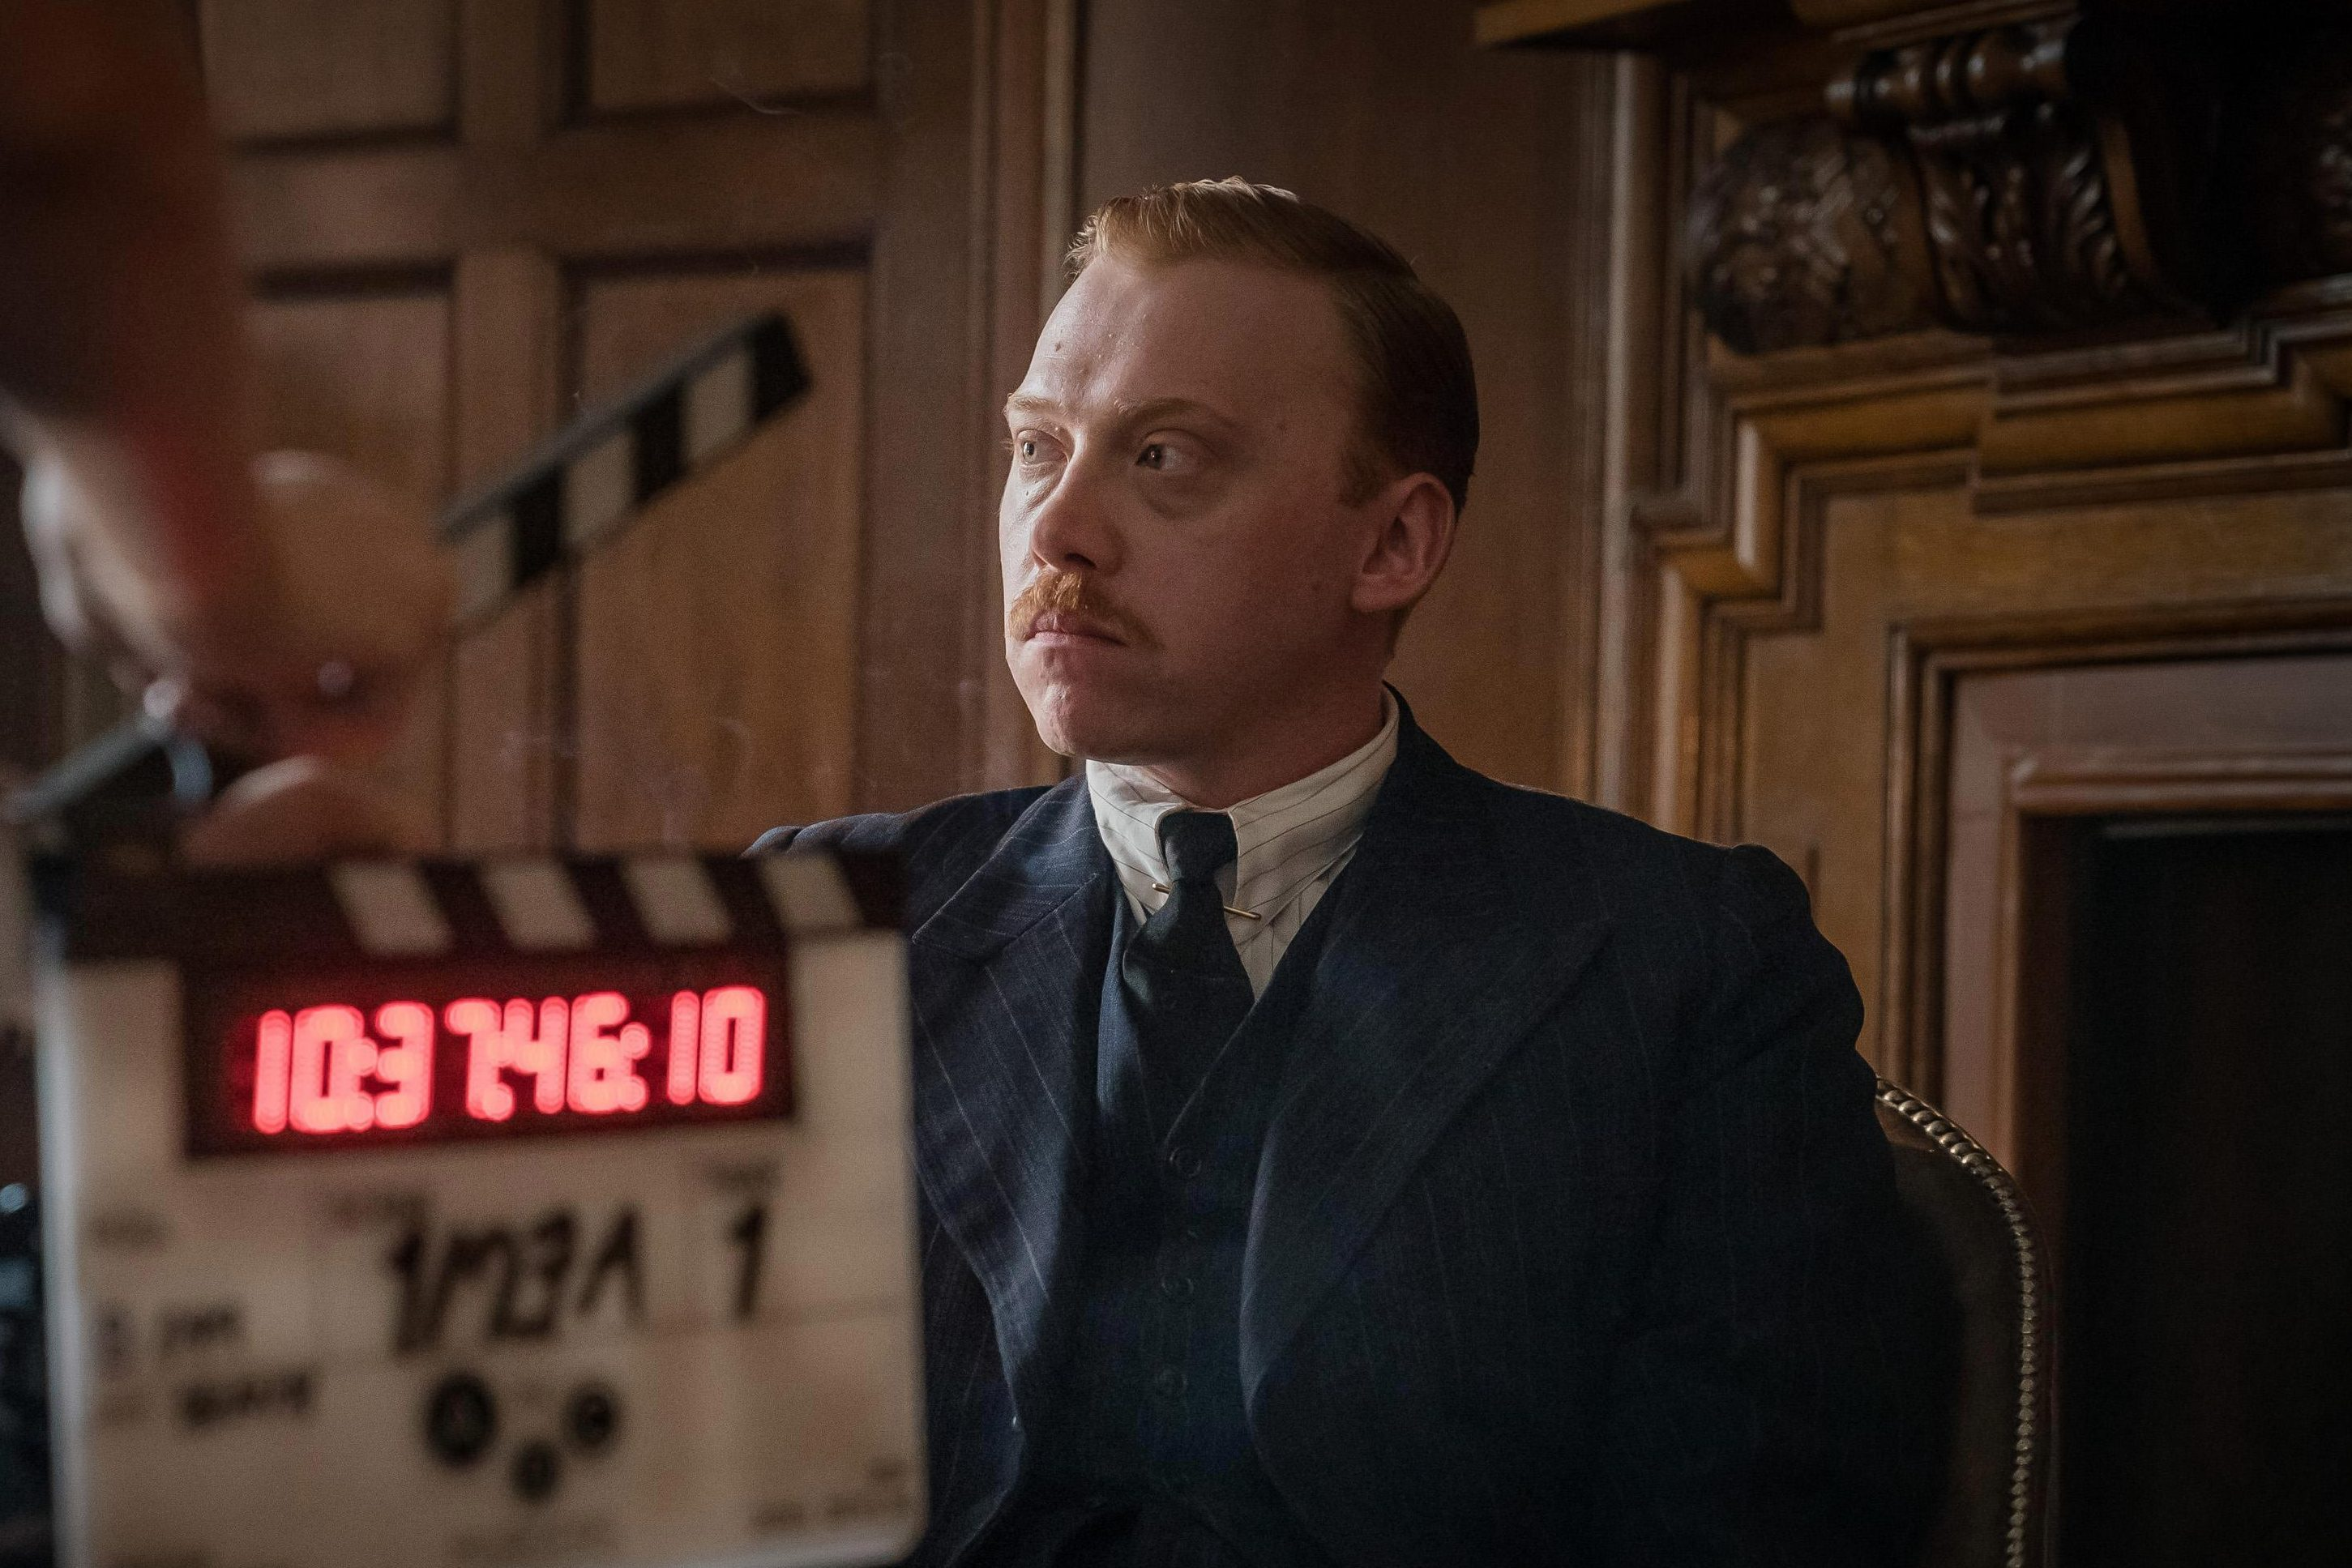 Who's in The ABC Murders cast? John Malkovich, Rupert Grint, Shirley Henderson, Kevin McNally, Gregor Fisher and Jack Farthing star